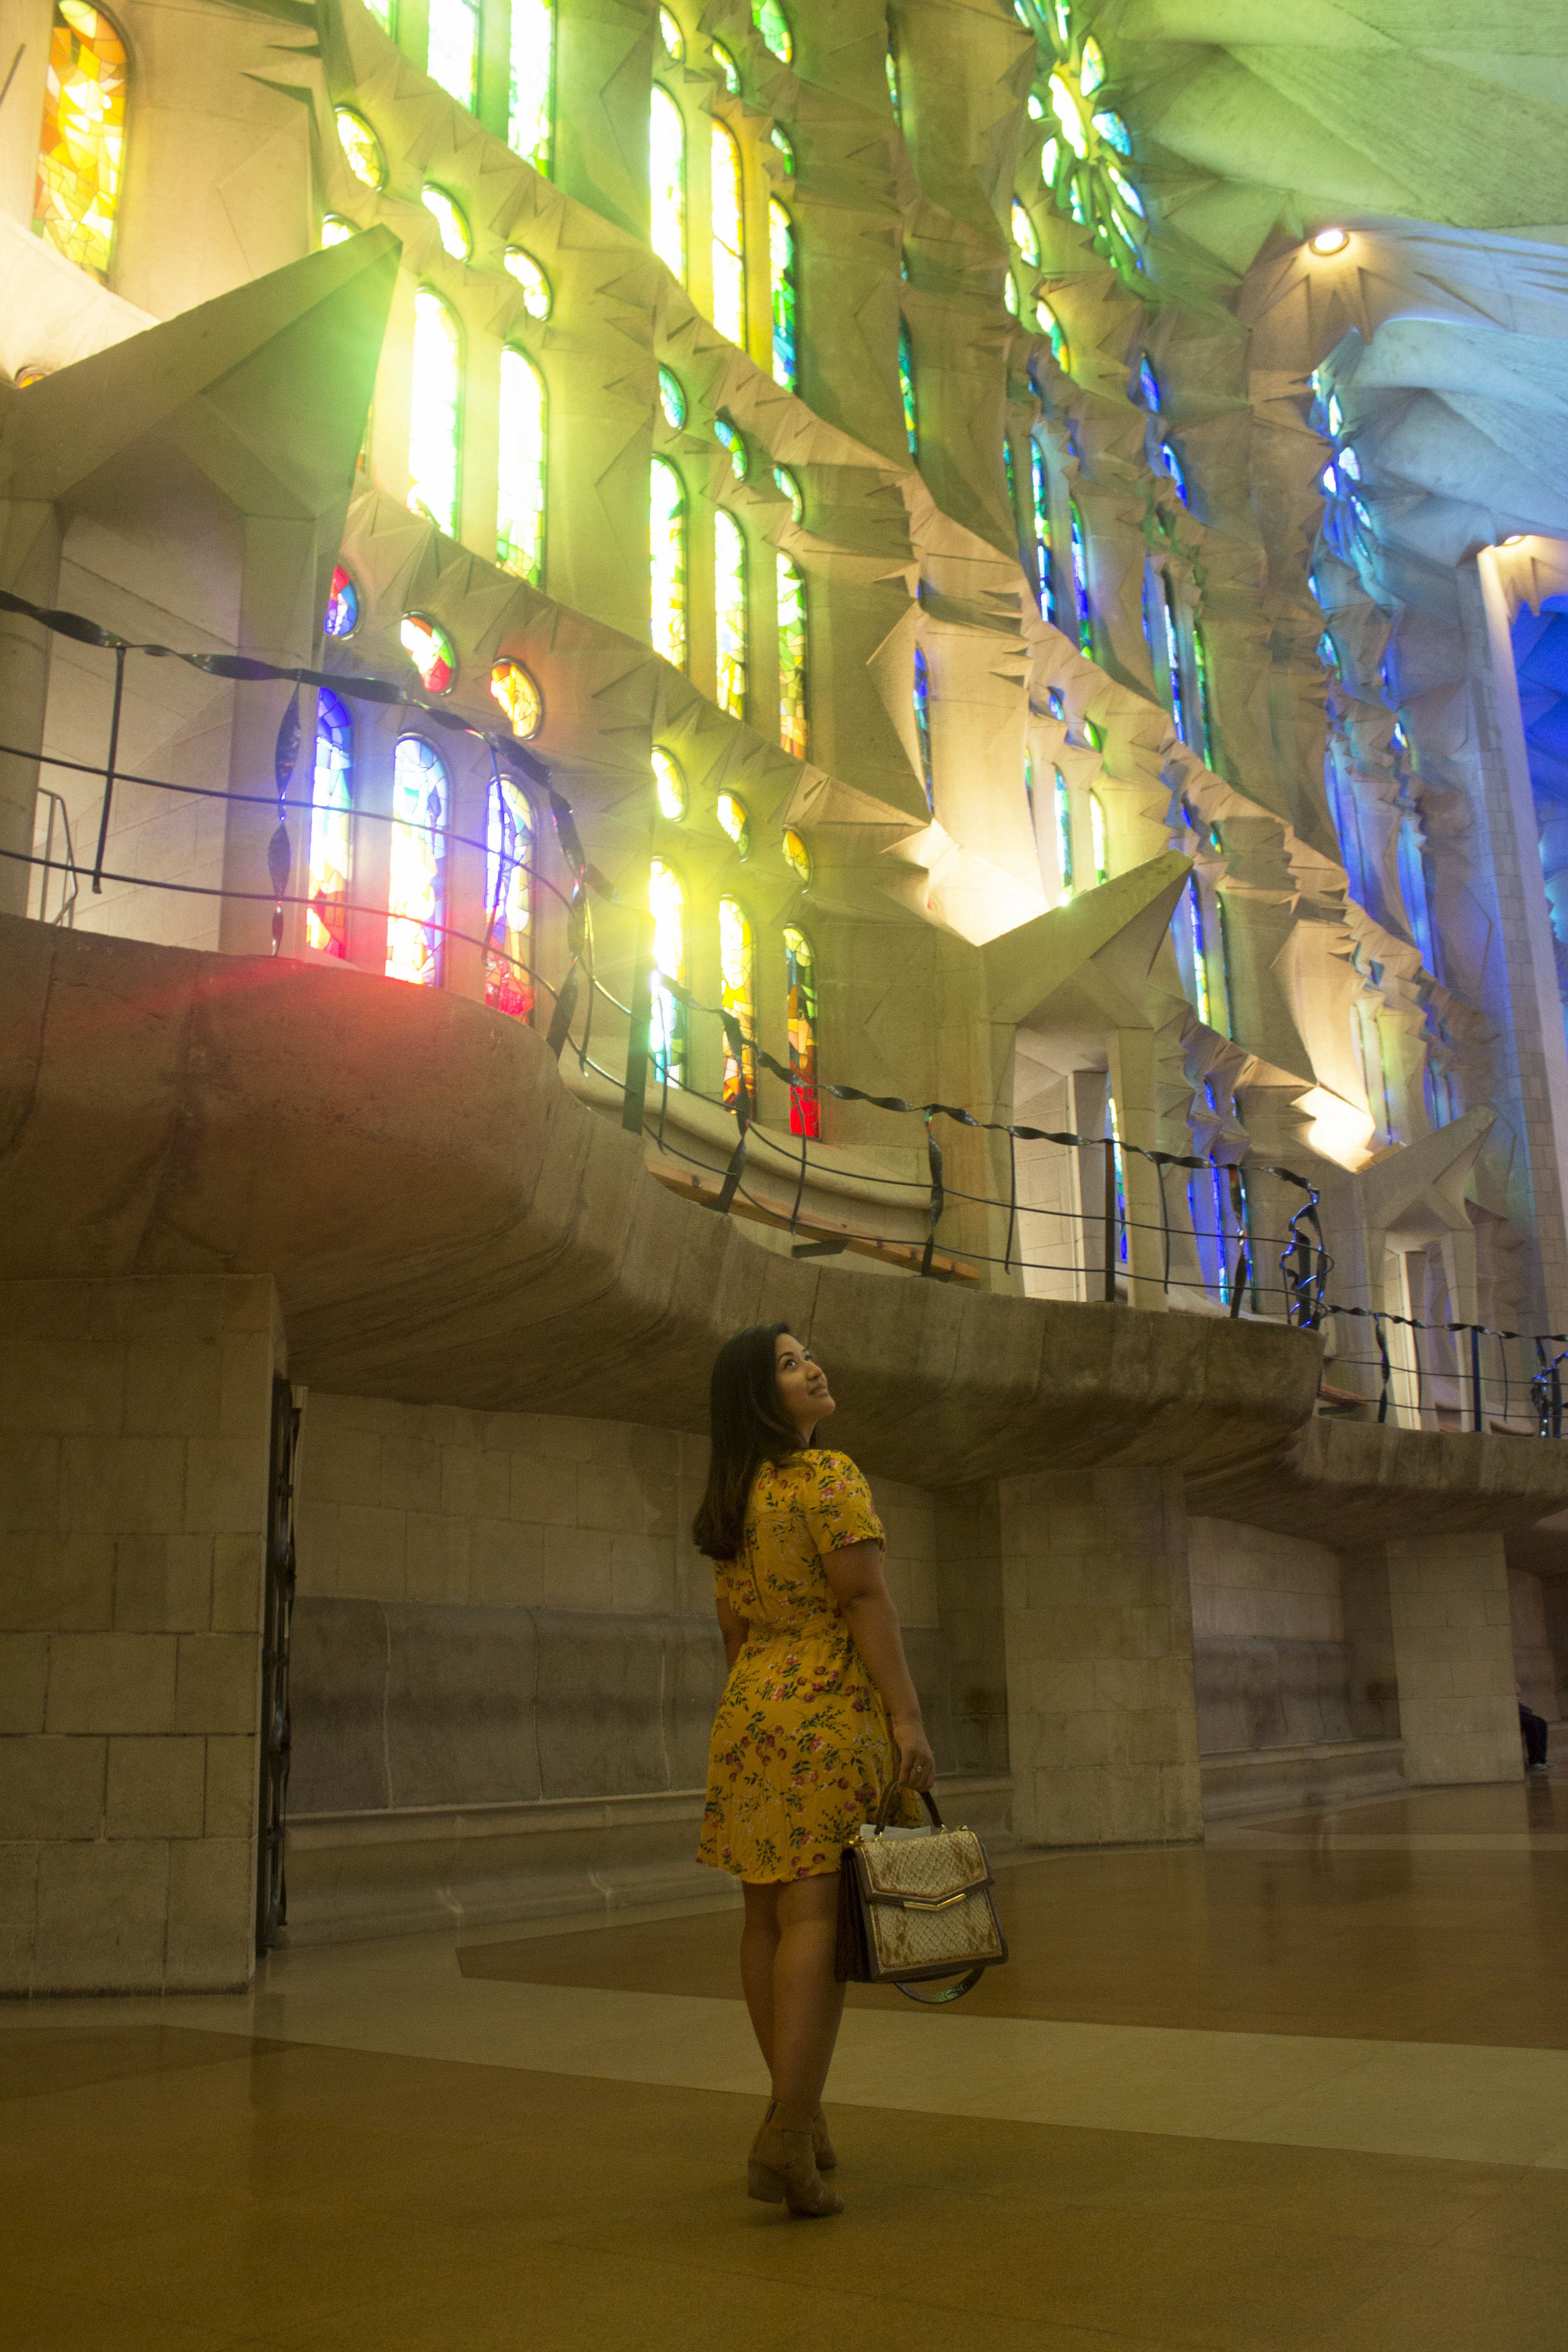 Krity S travel Barcelona La Sagrada Familia